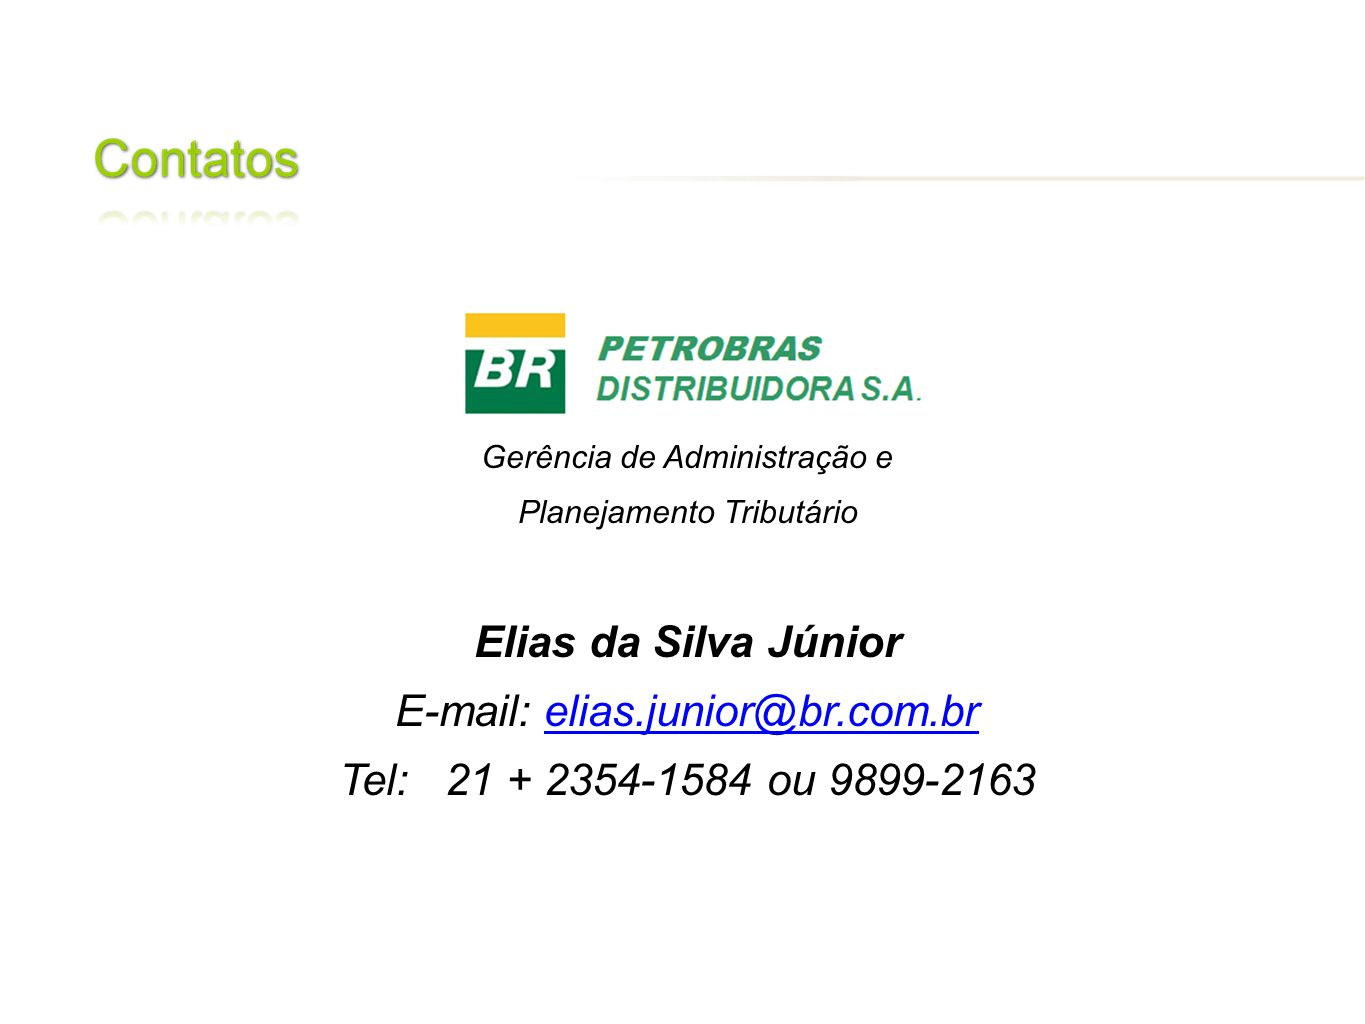 E-mail: elias.junior@br.com.br Tel: 21 + 2354-1584 ou 9899-2163